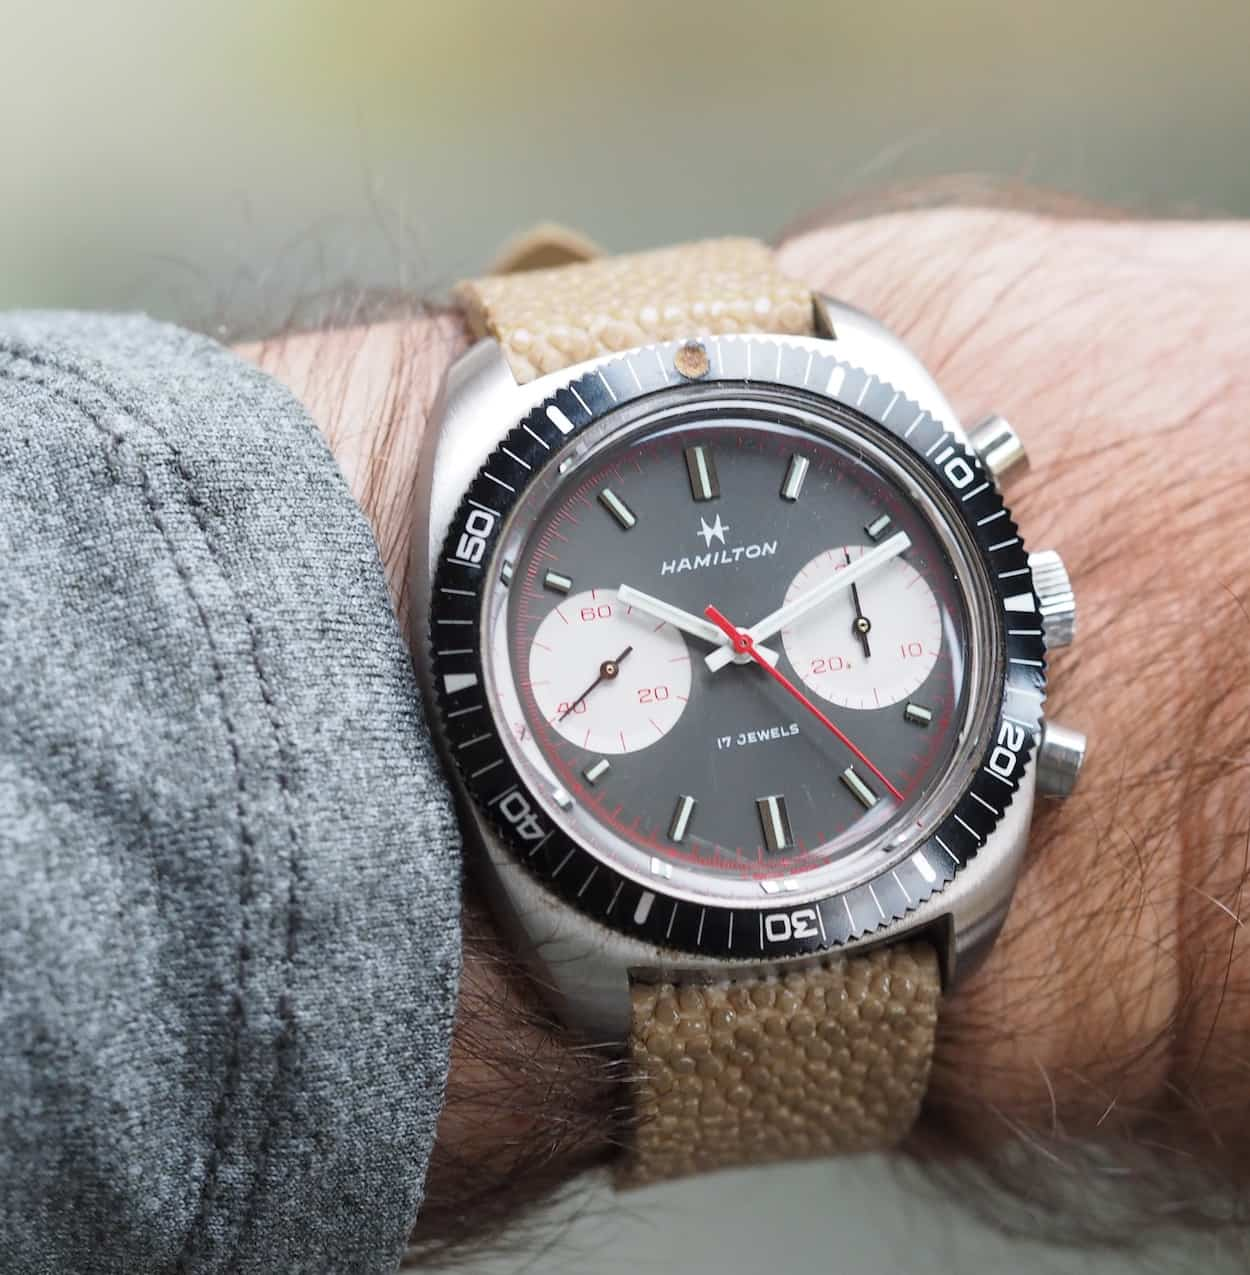 Hamilton Chrono-Diver on the wrist